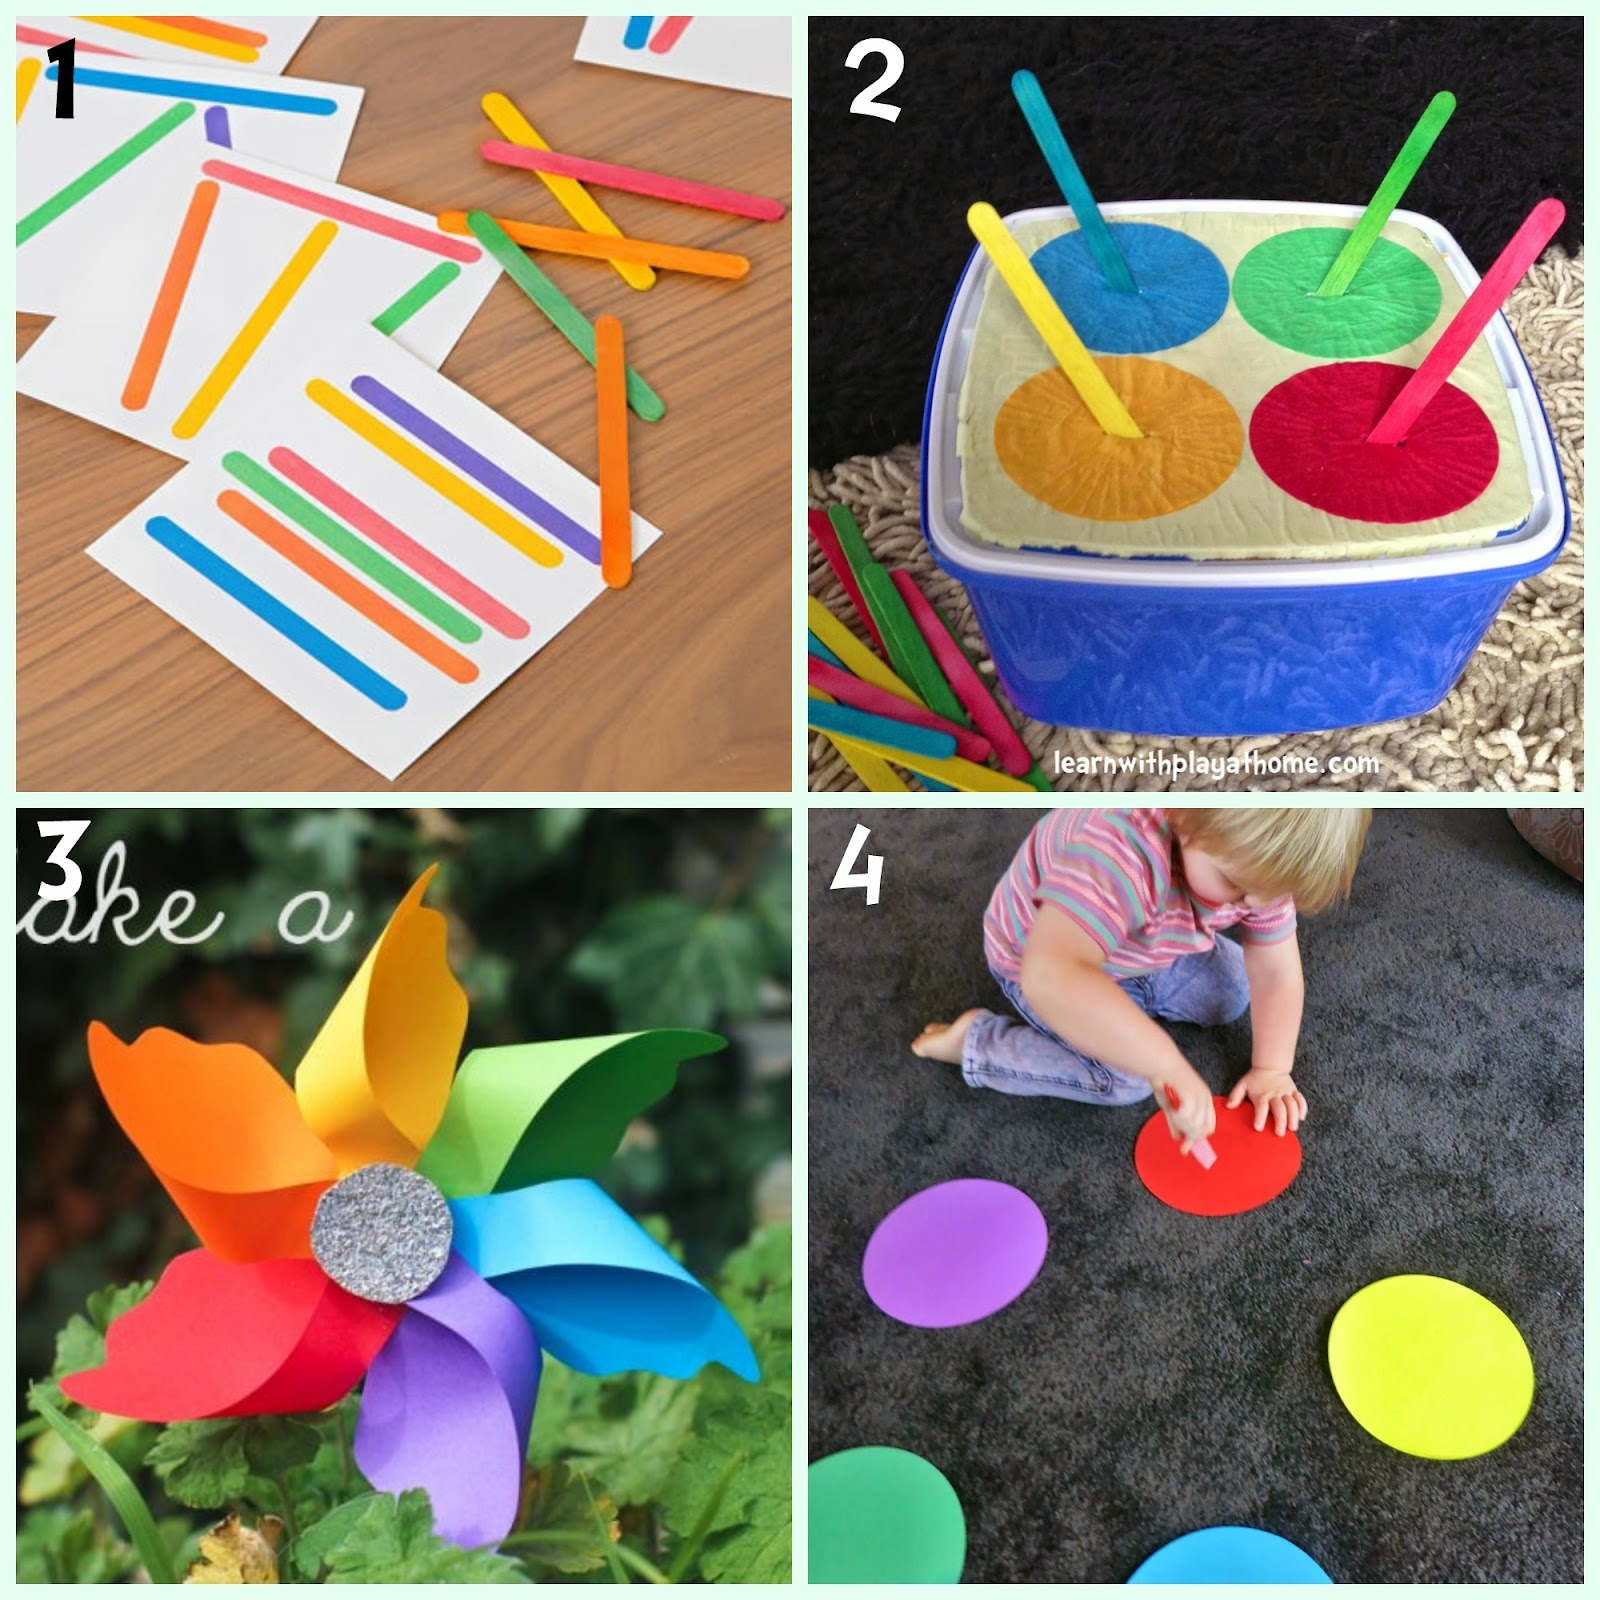 Color Activities For 1 Year Olds